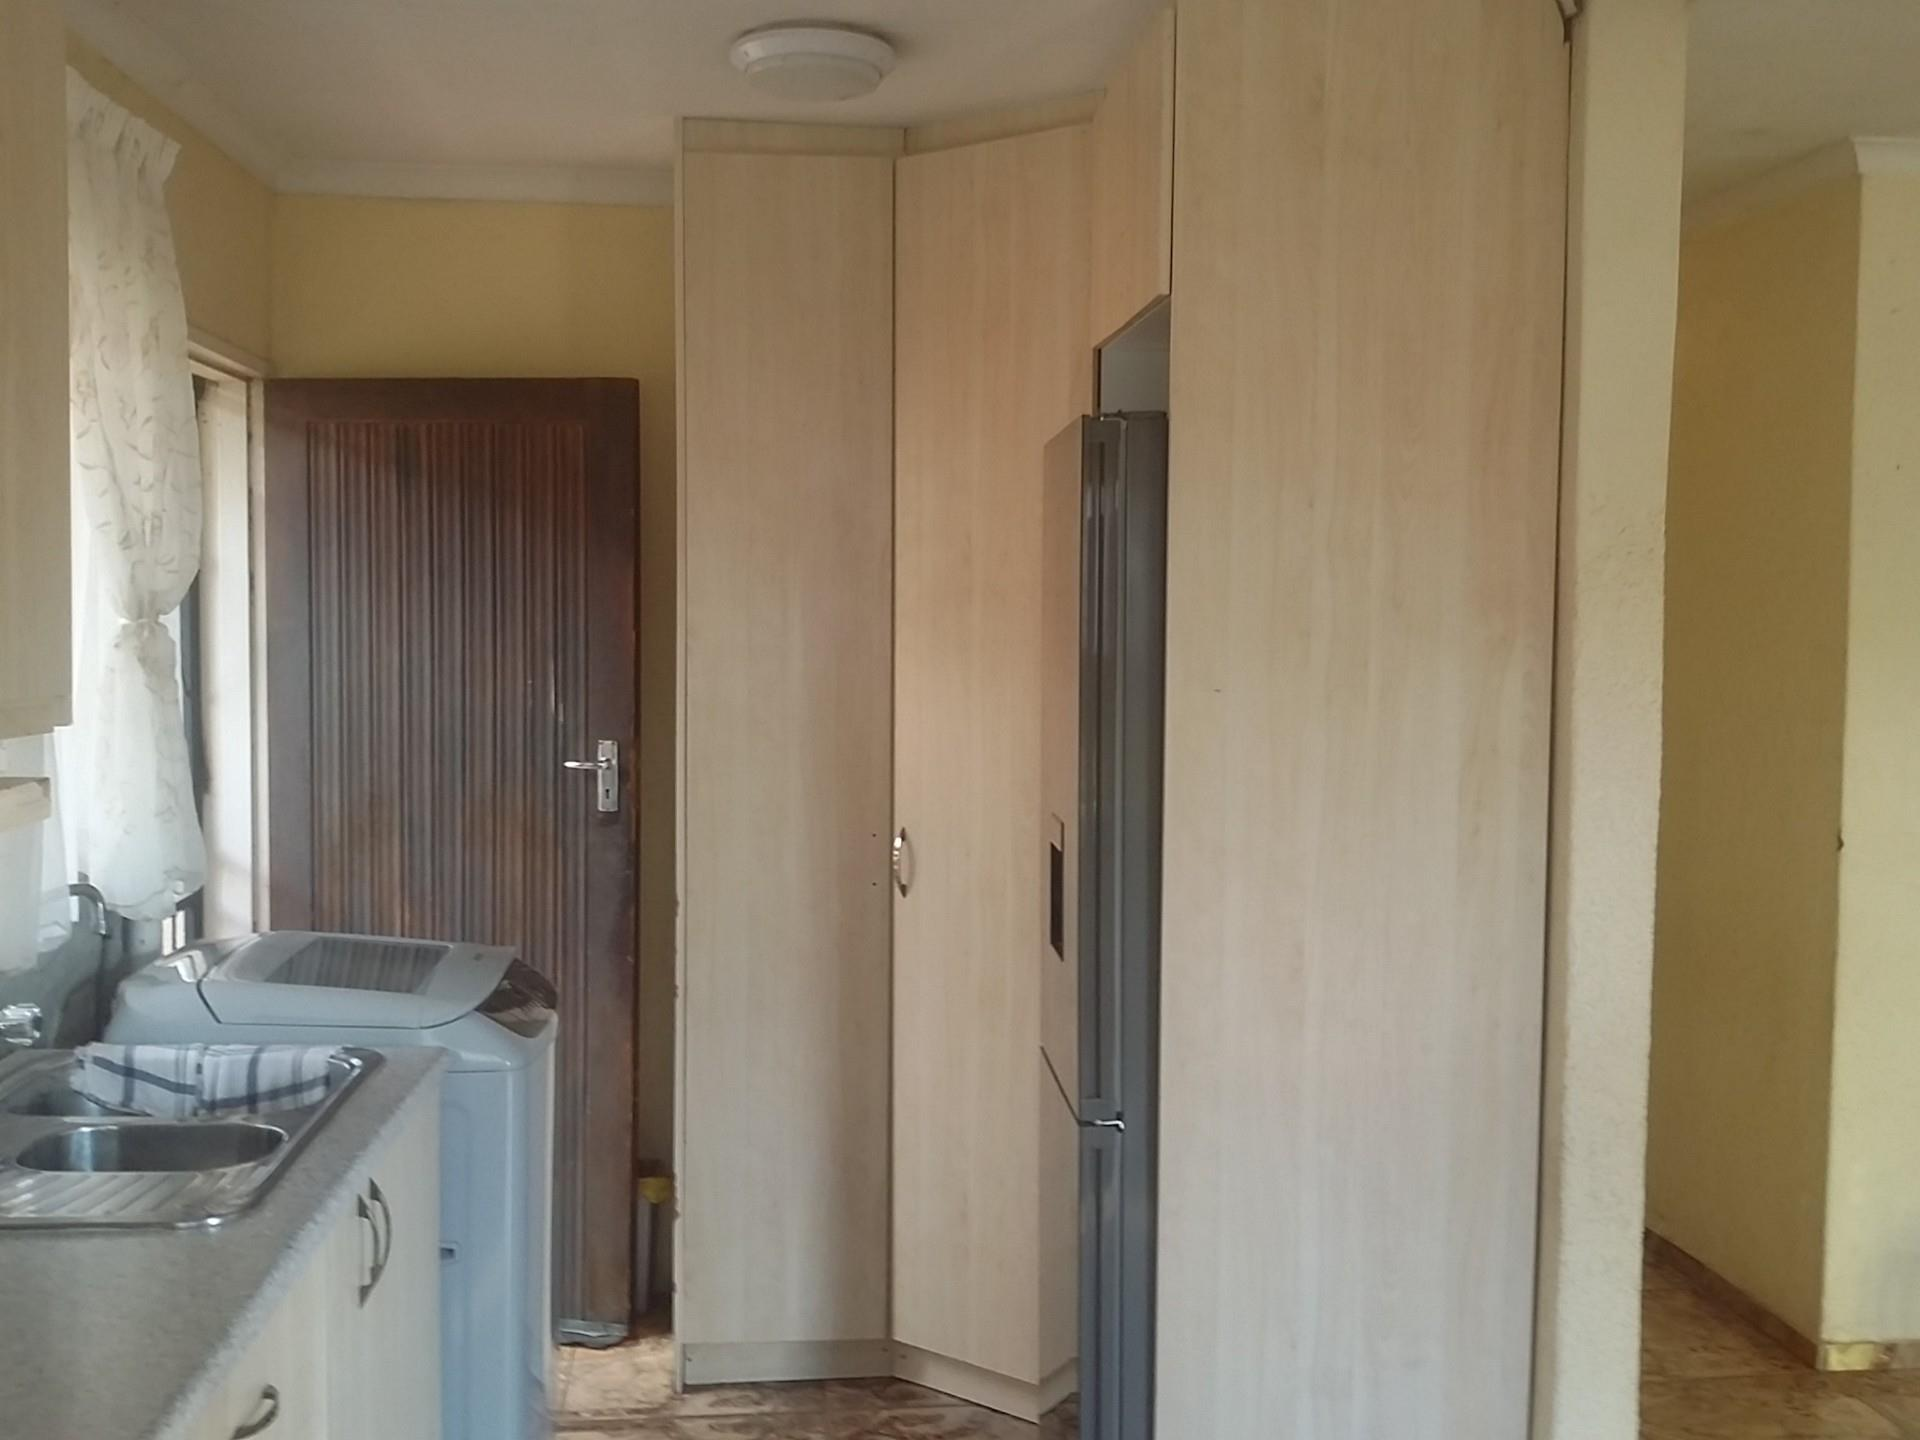 3 Bedroom House For Sale in Mohlakeng